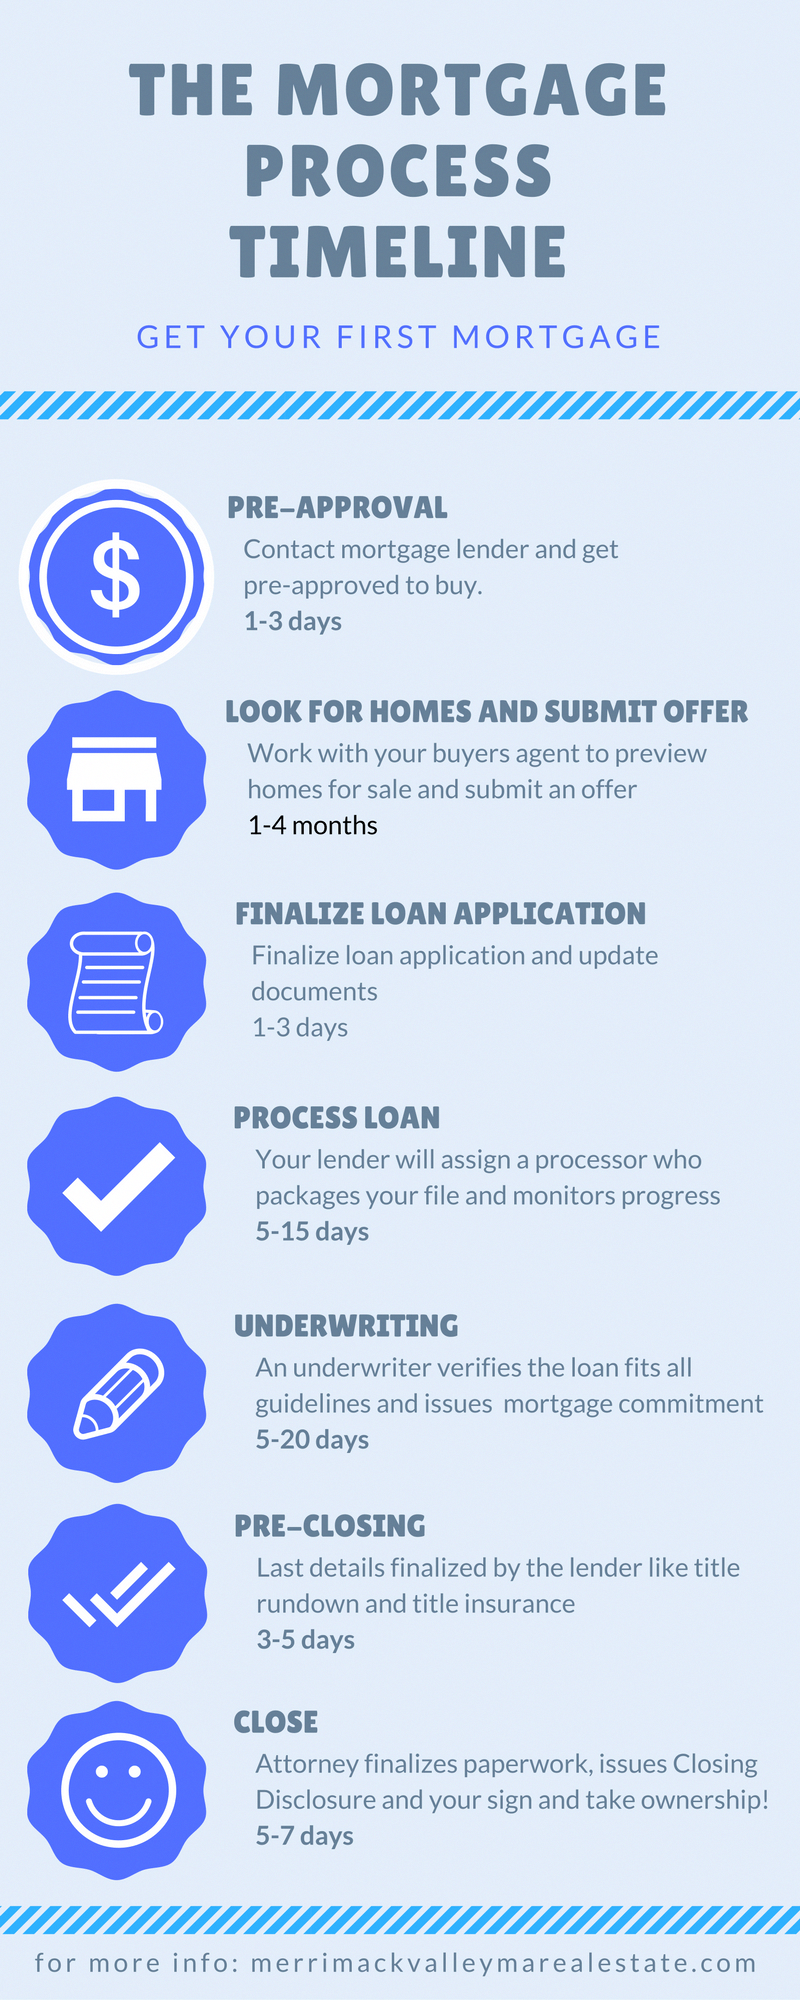 Getting Your First Mortgage When Buying Your First Home In 2020 Buying Your First Home Home Buying Tips Home Buying Process